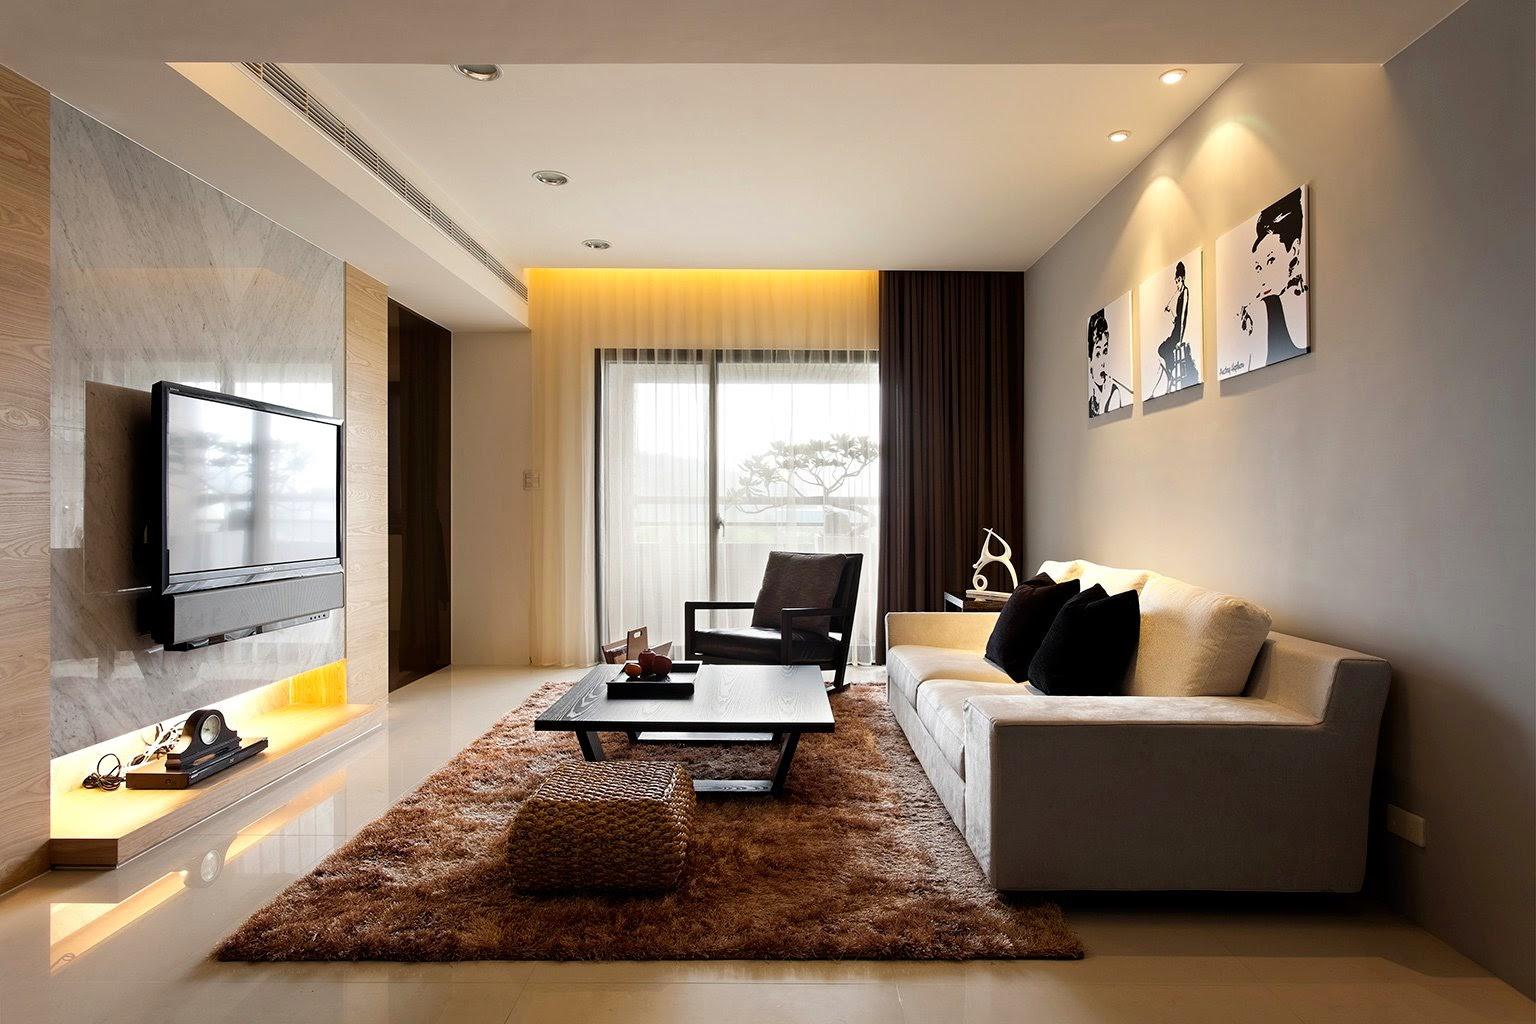 Living Room Home Design And Decor stylish minimalist home design and decor homes the modern small living room 2015